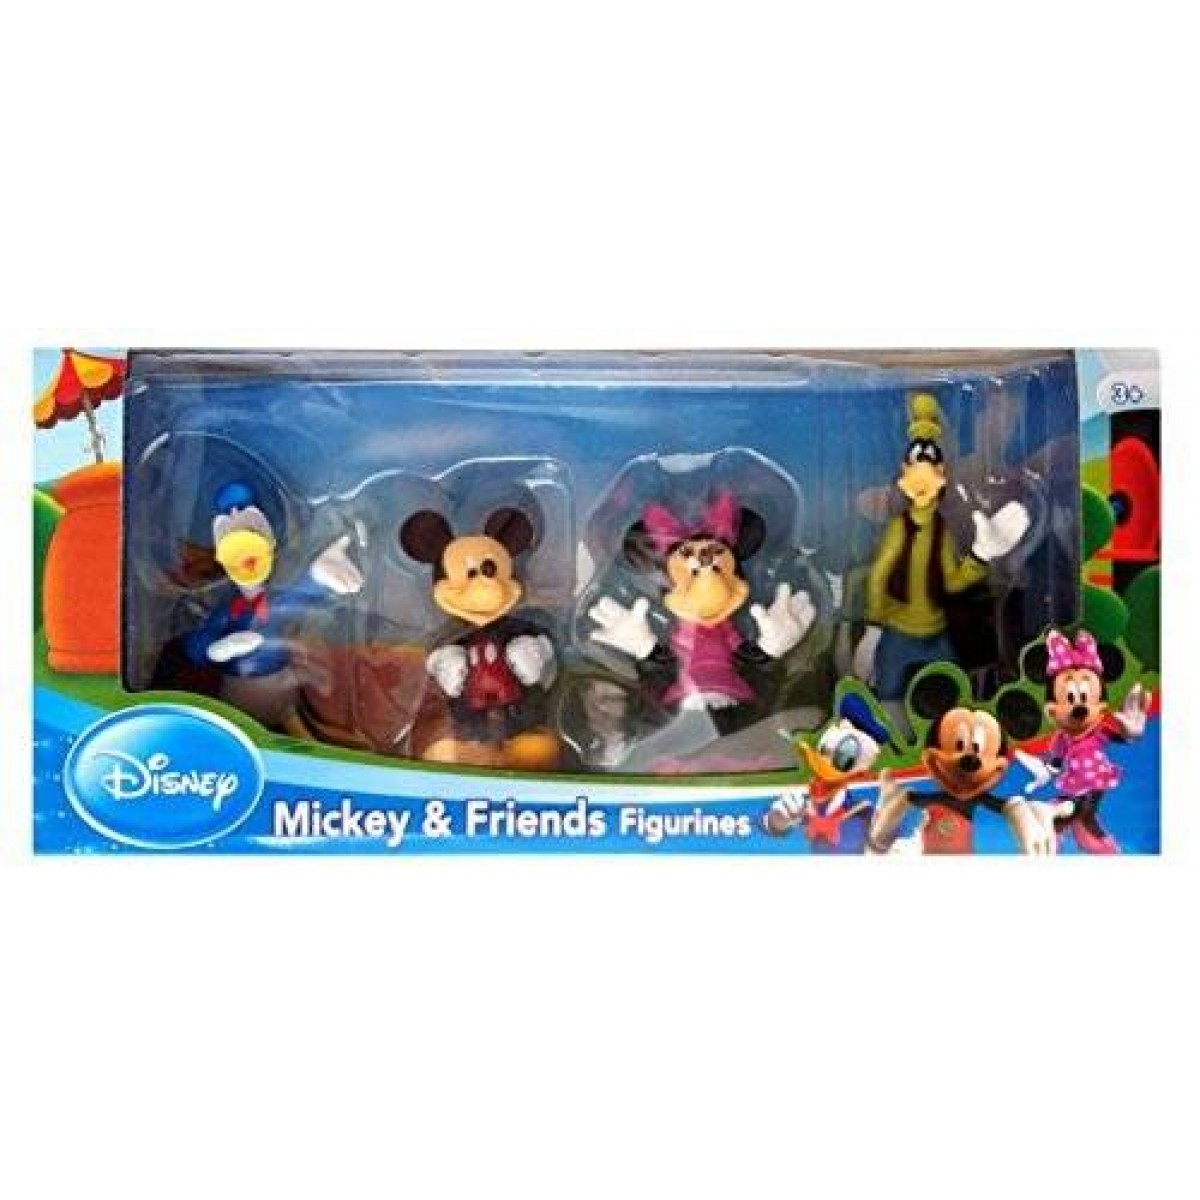 Beverly Hills Teddy Bear Company Disney Mickey and Friends Toy Figure Playset 4-Piece 5516220